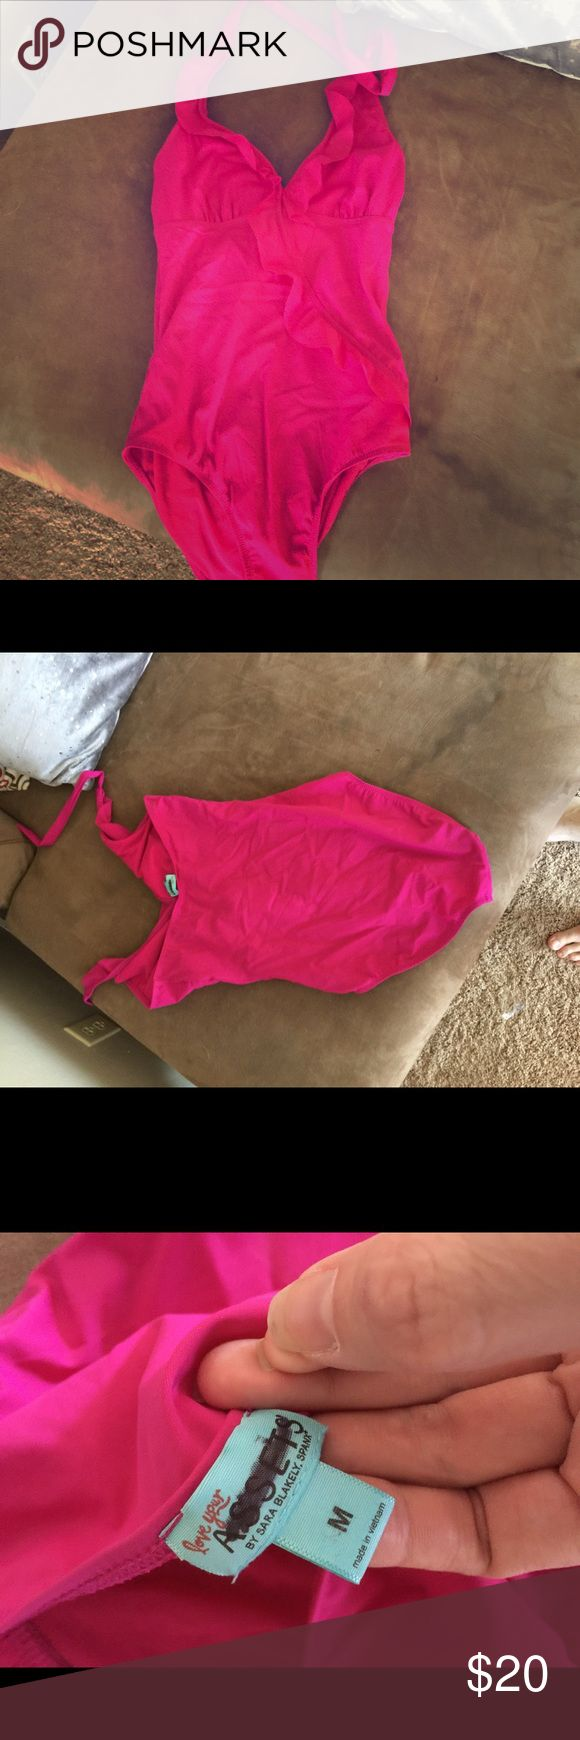 """Spanx Size M """"Love Your Assets"""" one-piece suit This is a size M Spanx """"Love Your Assets"""" suit. I bought this from Poshmark but apparently I have an over abundance of """"assets!"""" 😂 My loss is your gain. There are zero flaws and the color is perfection. SPANX Swim One Pieces"""